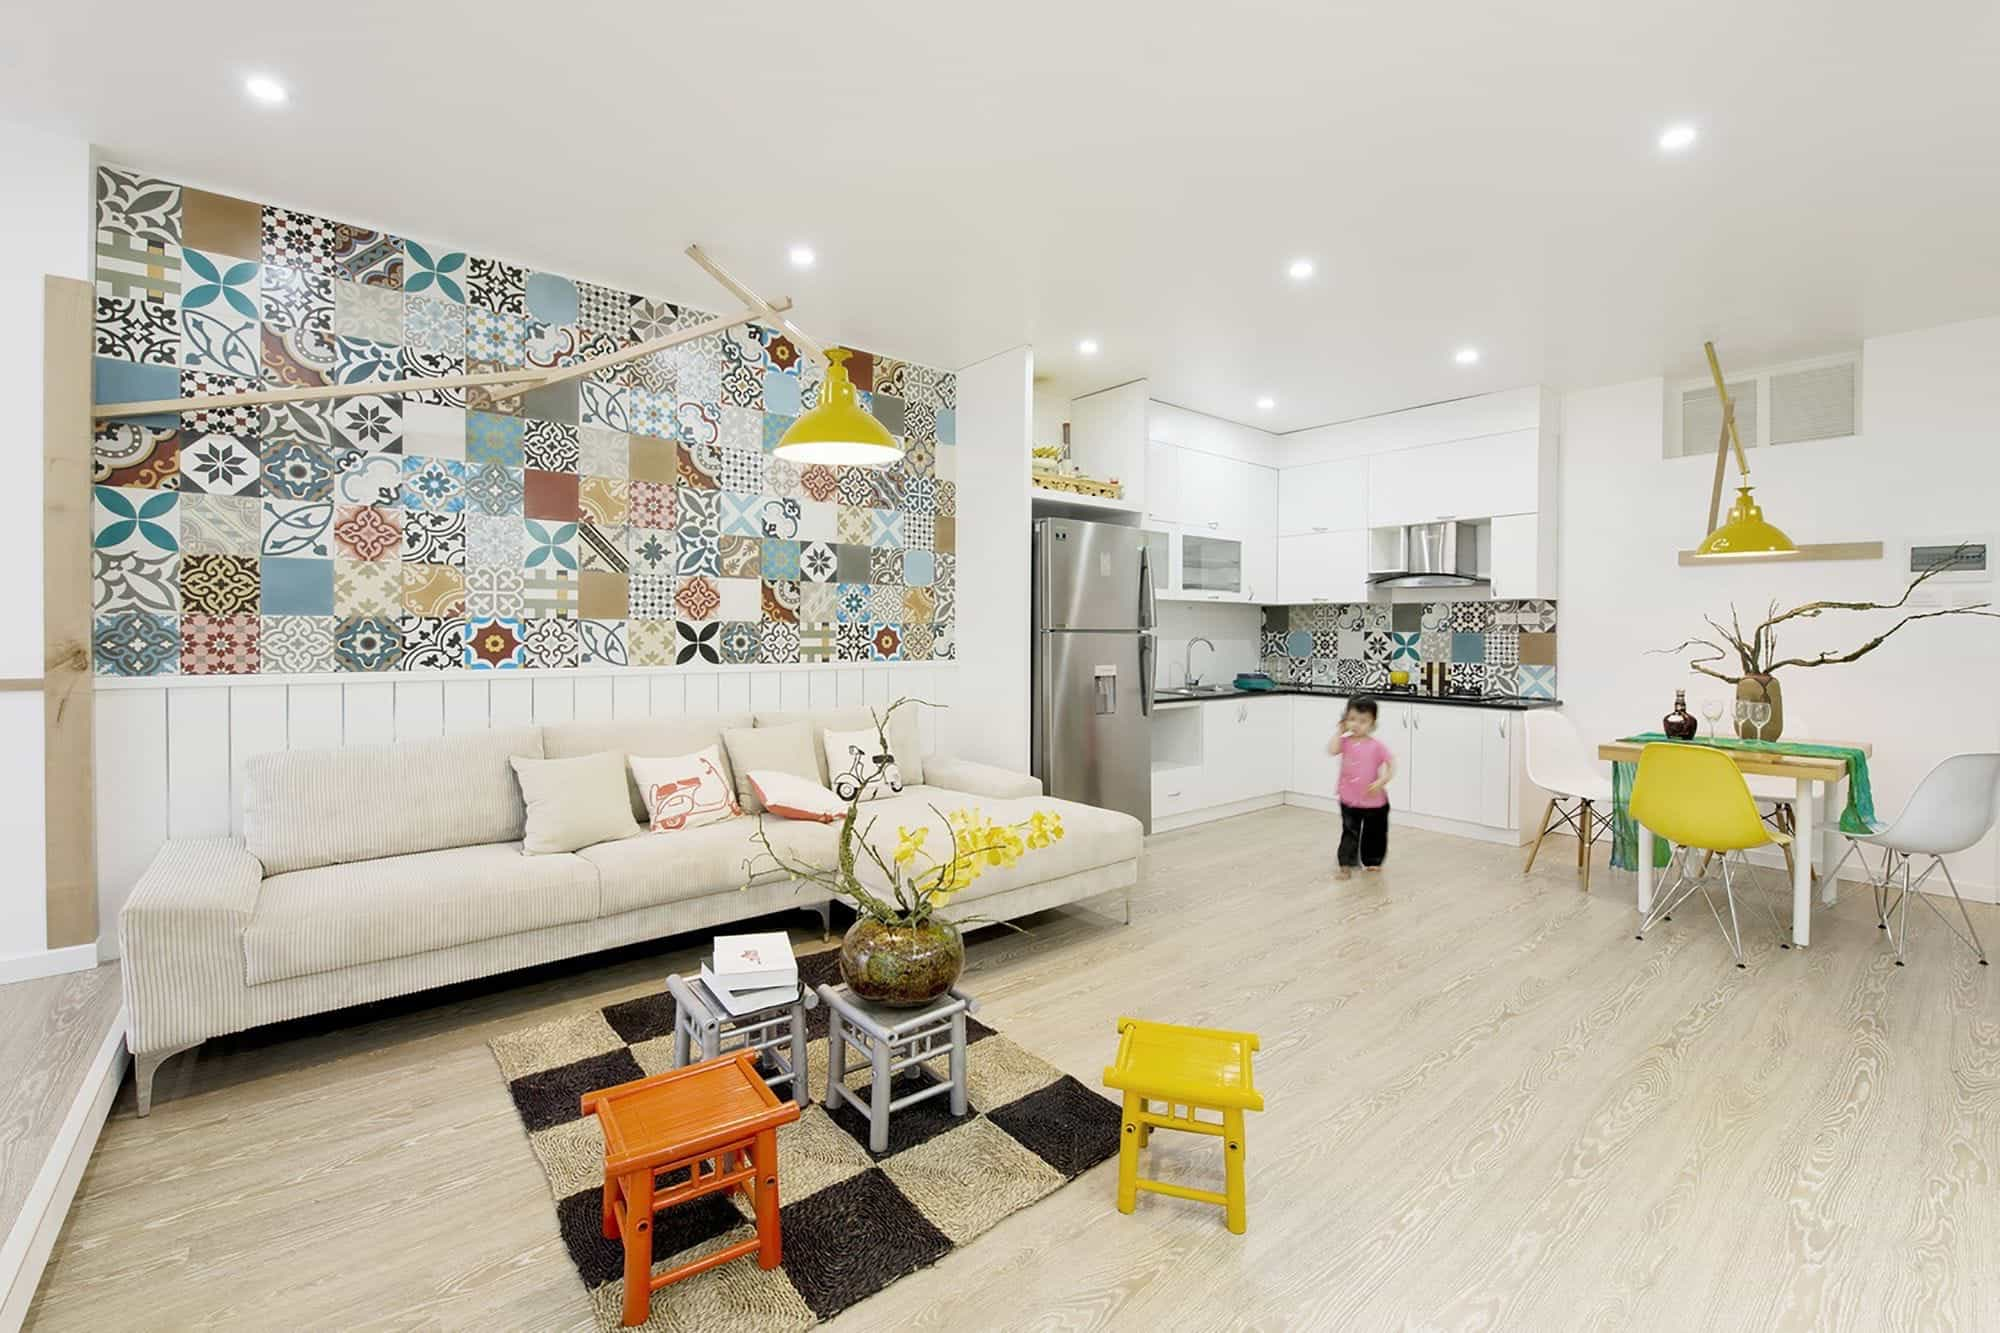 Featured Image of Cozy Apartment Interior With Ceramic Wall Tiles